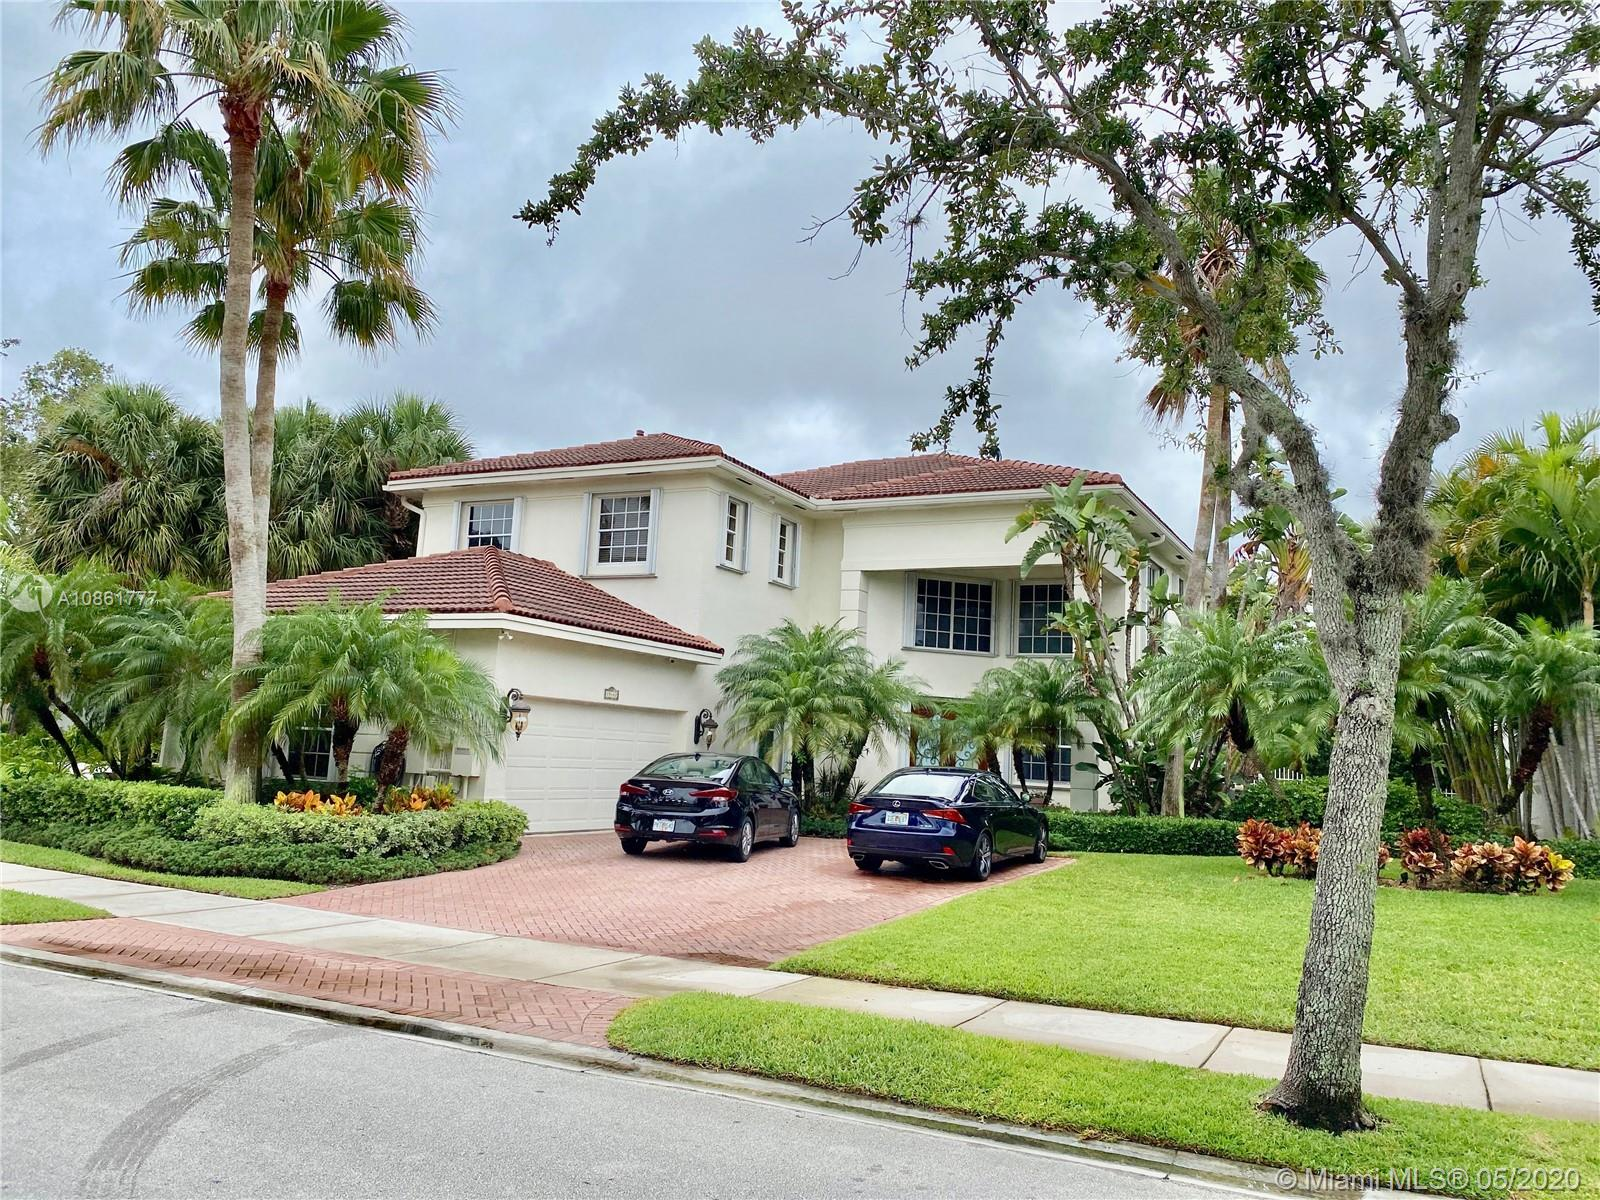 Details for 19448 17th Ave, Miami, FL 33179